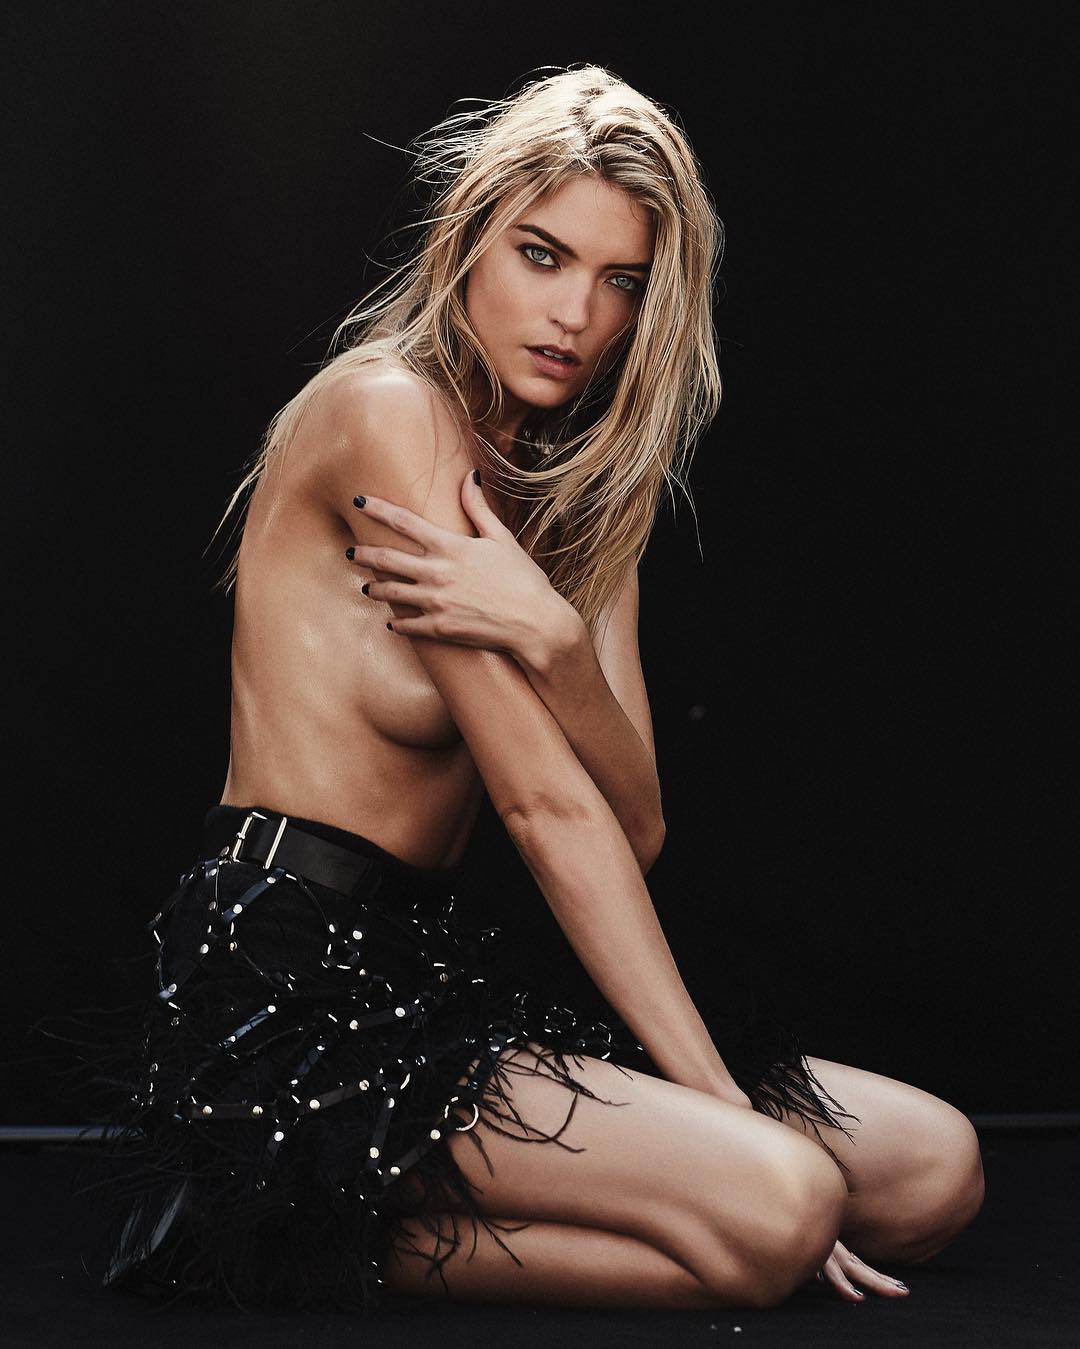 Martha Hunt | The Fappening. 2014-2019 celebrity photo leaks!